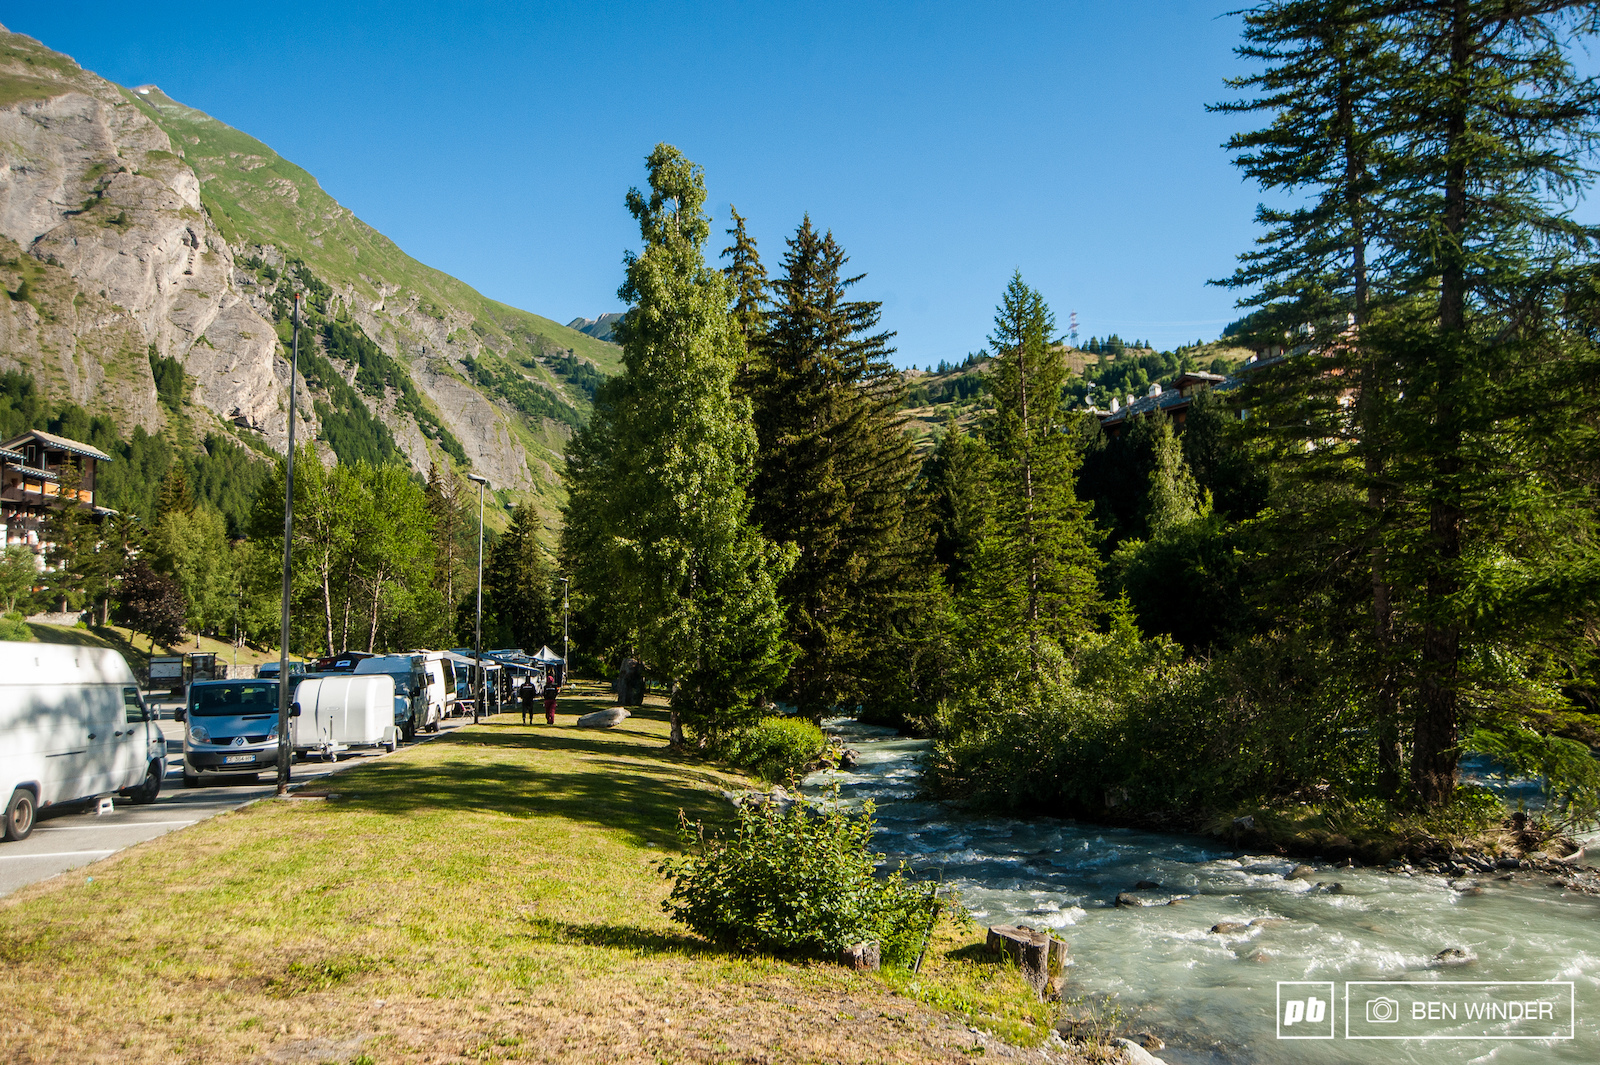 This year the campsite was just by the glacial river only one row of campervans in the main carpark. In previous years we ve seen carparks rammed.